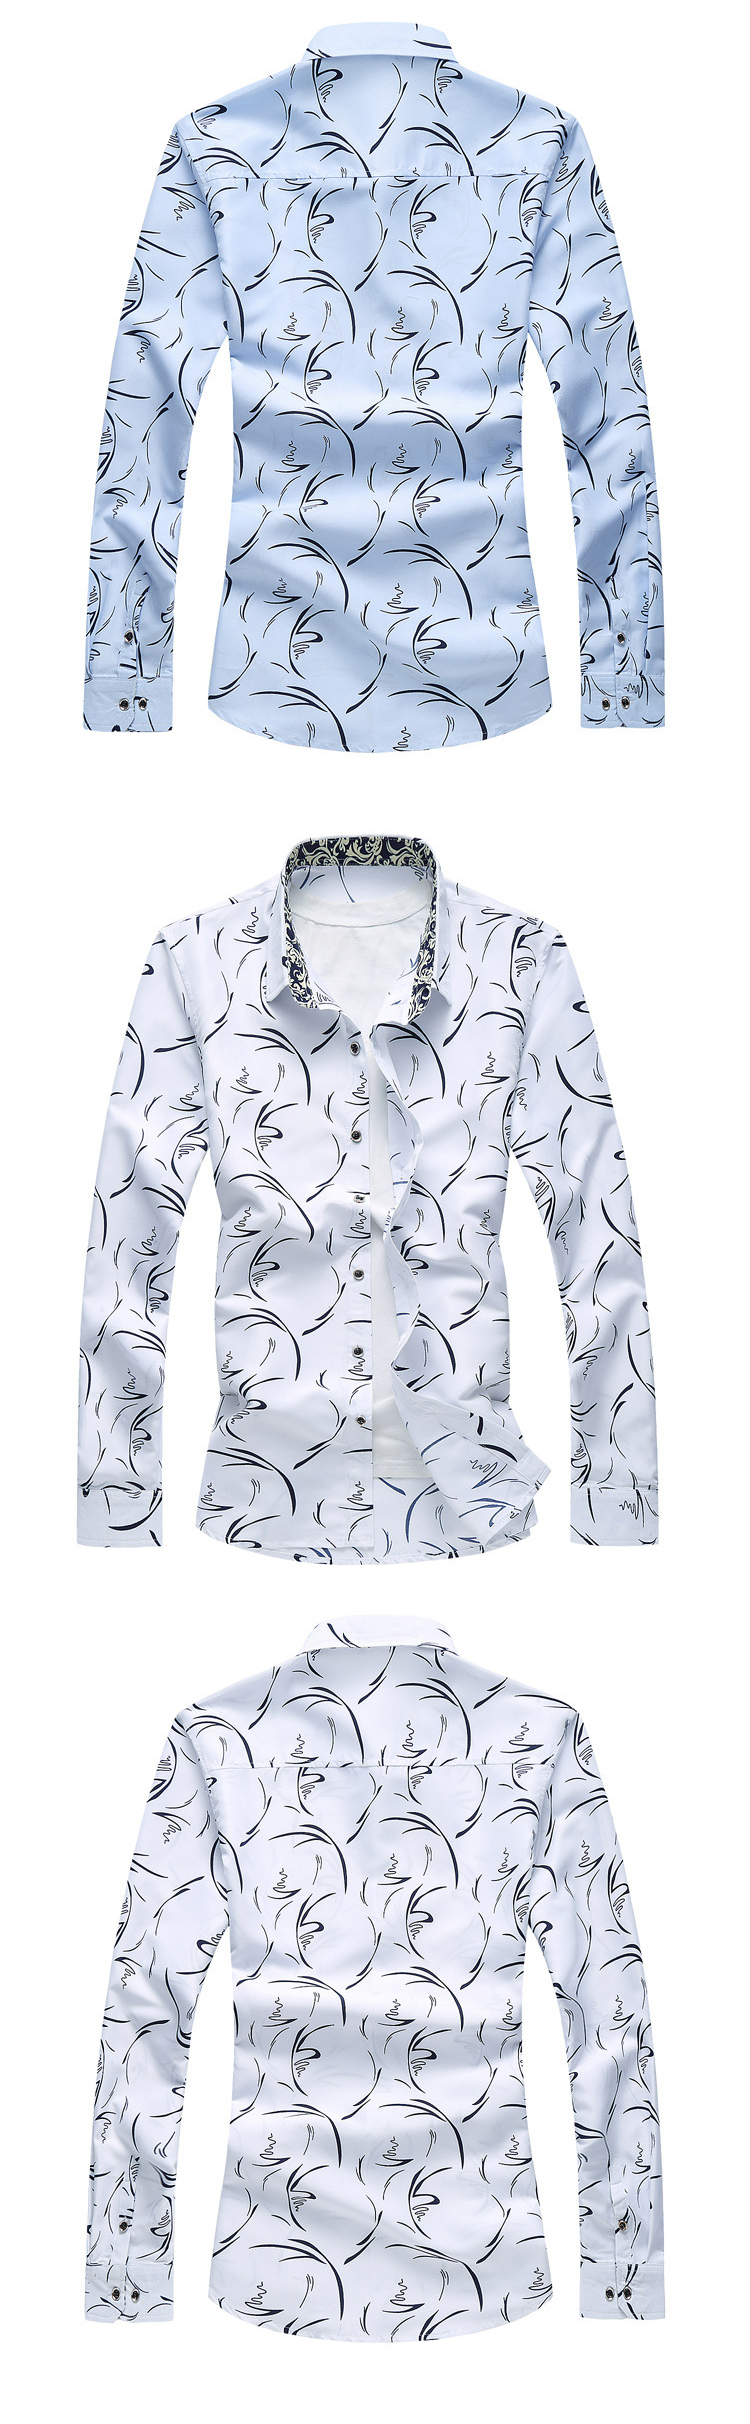 Large Size Printed Long Sleeve Casual Shirt for Men